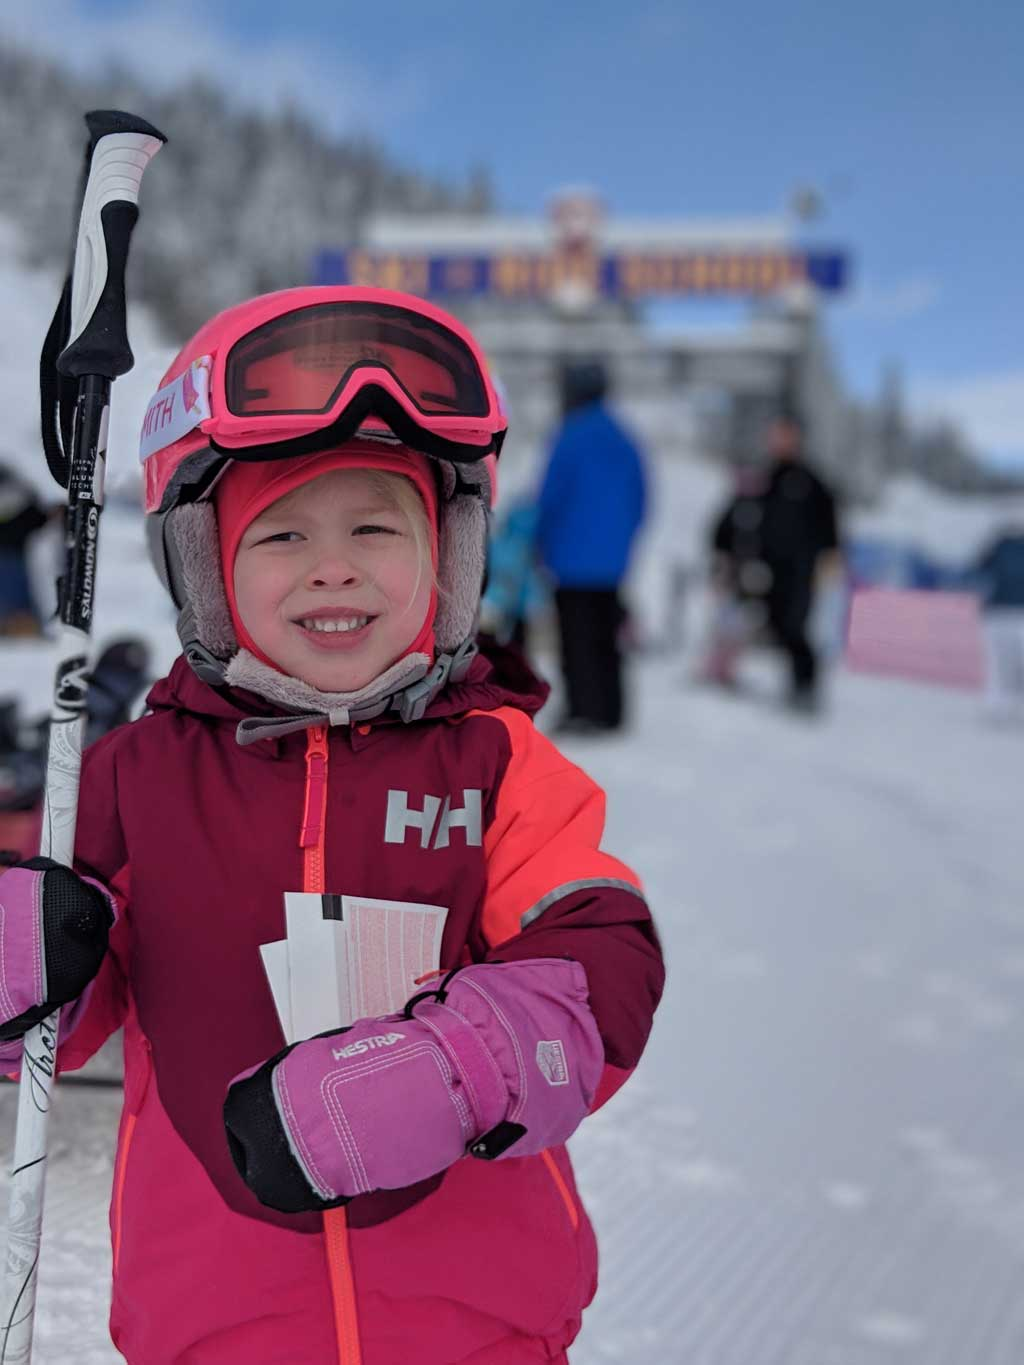 age to start skiing - 4 year old skiing